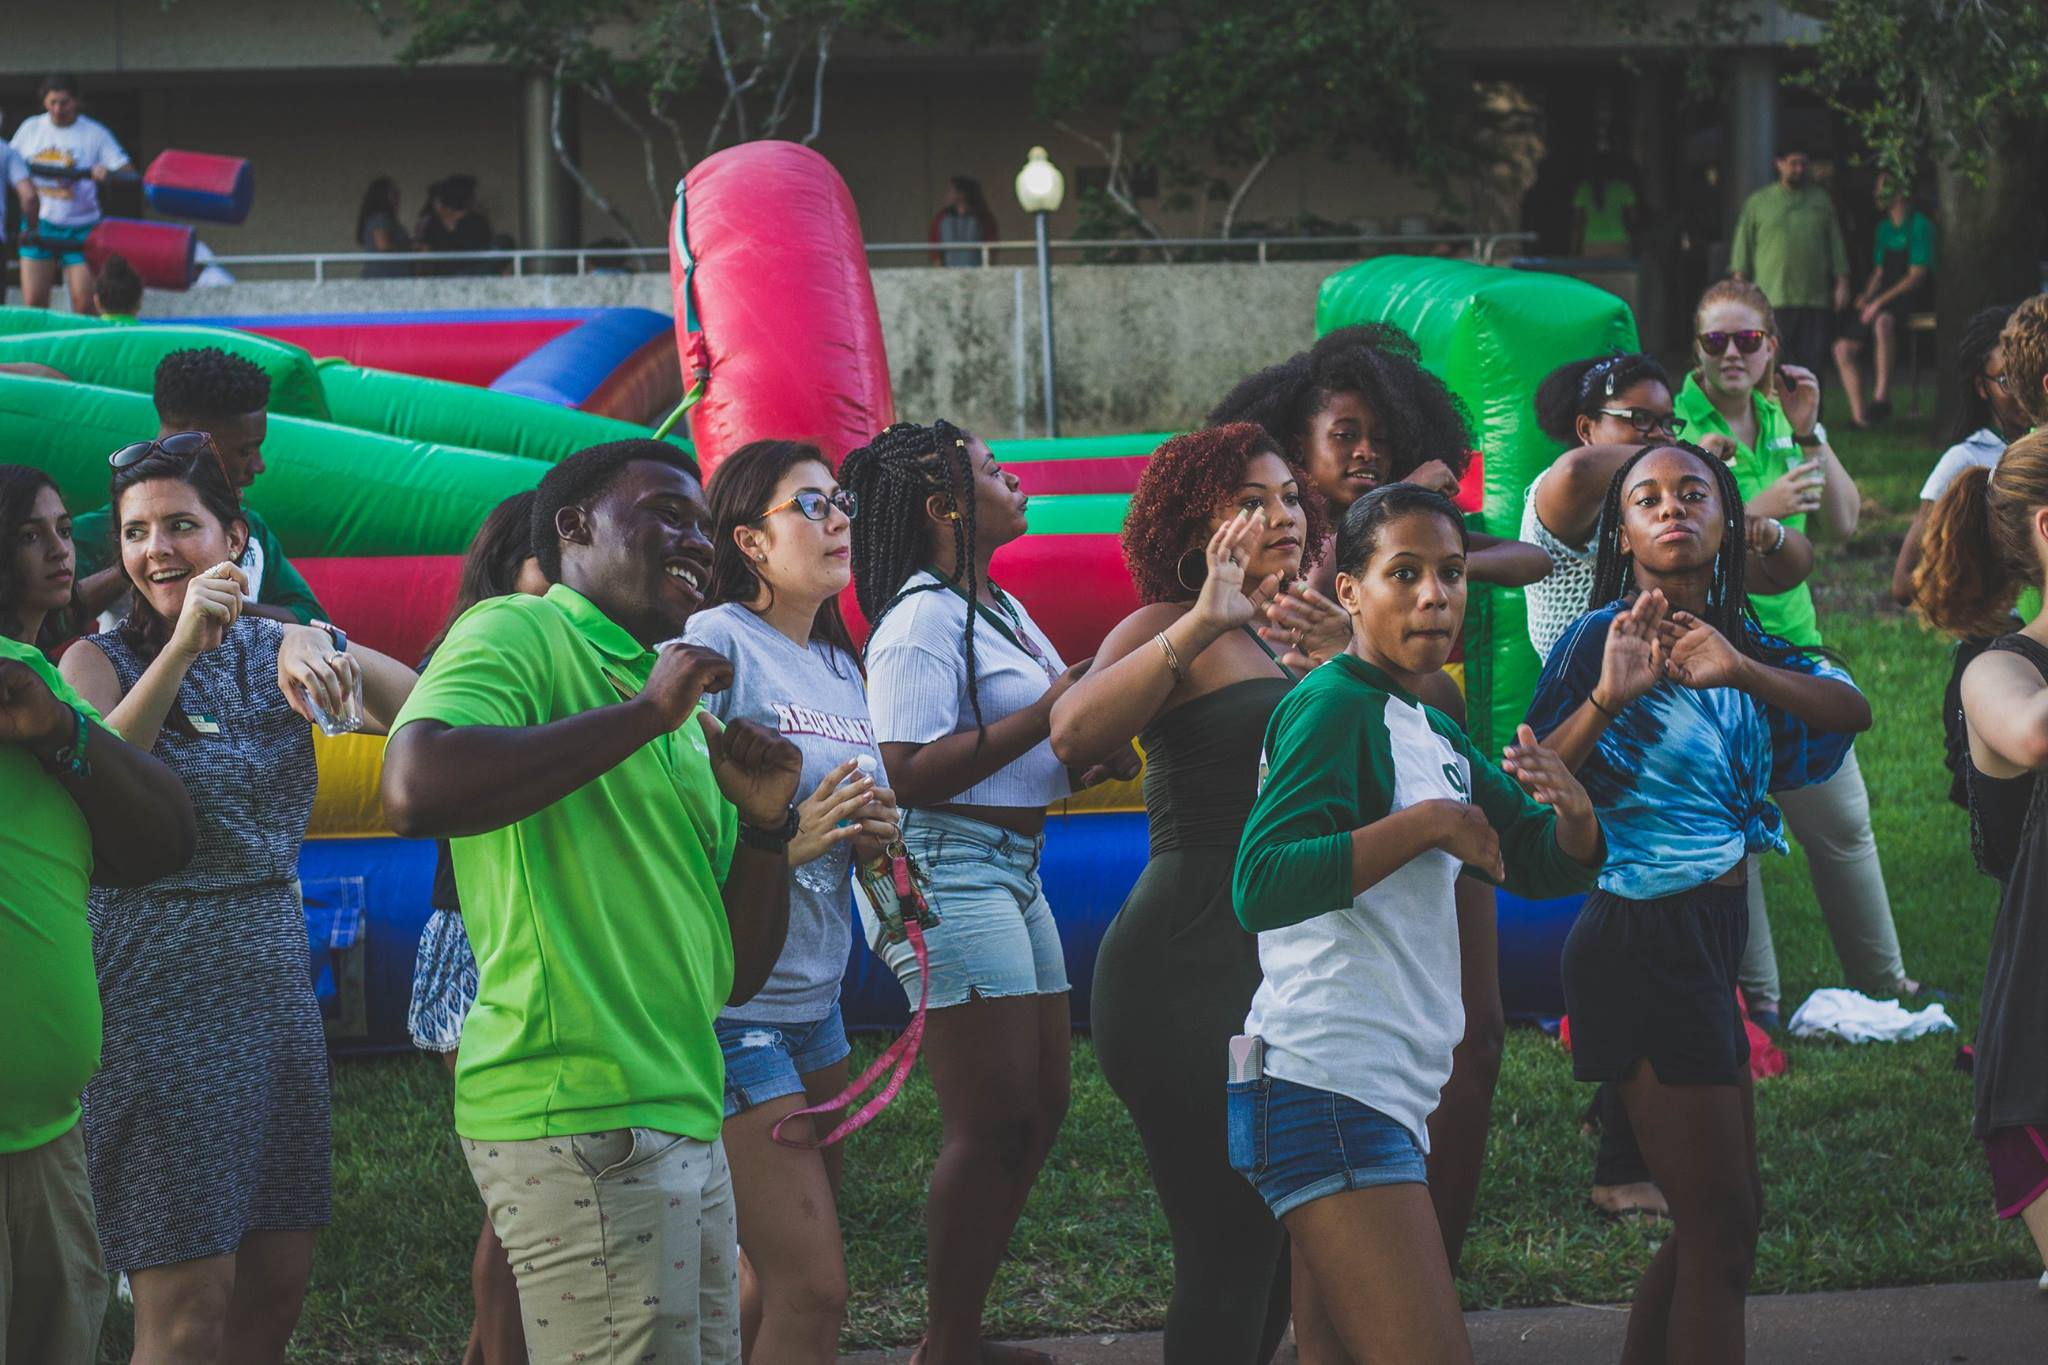 Students outdoors dancing in sync during USF week